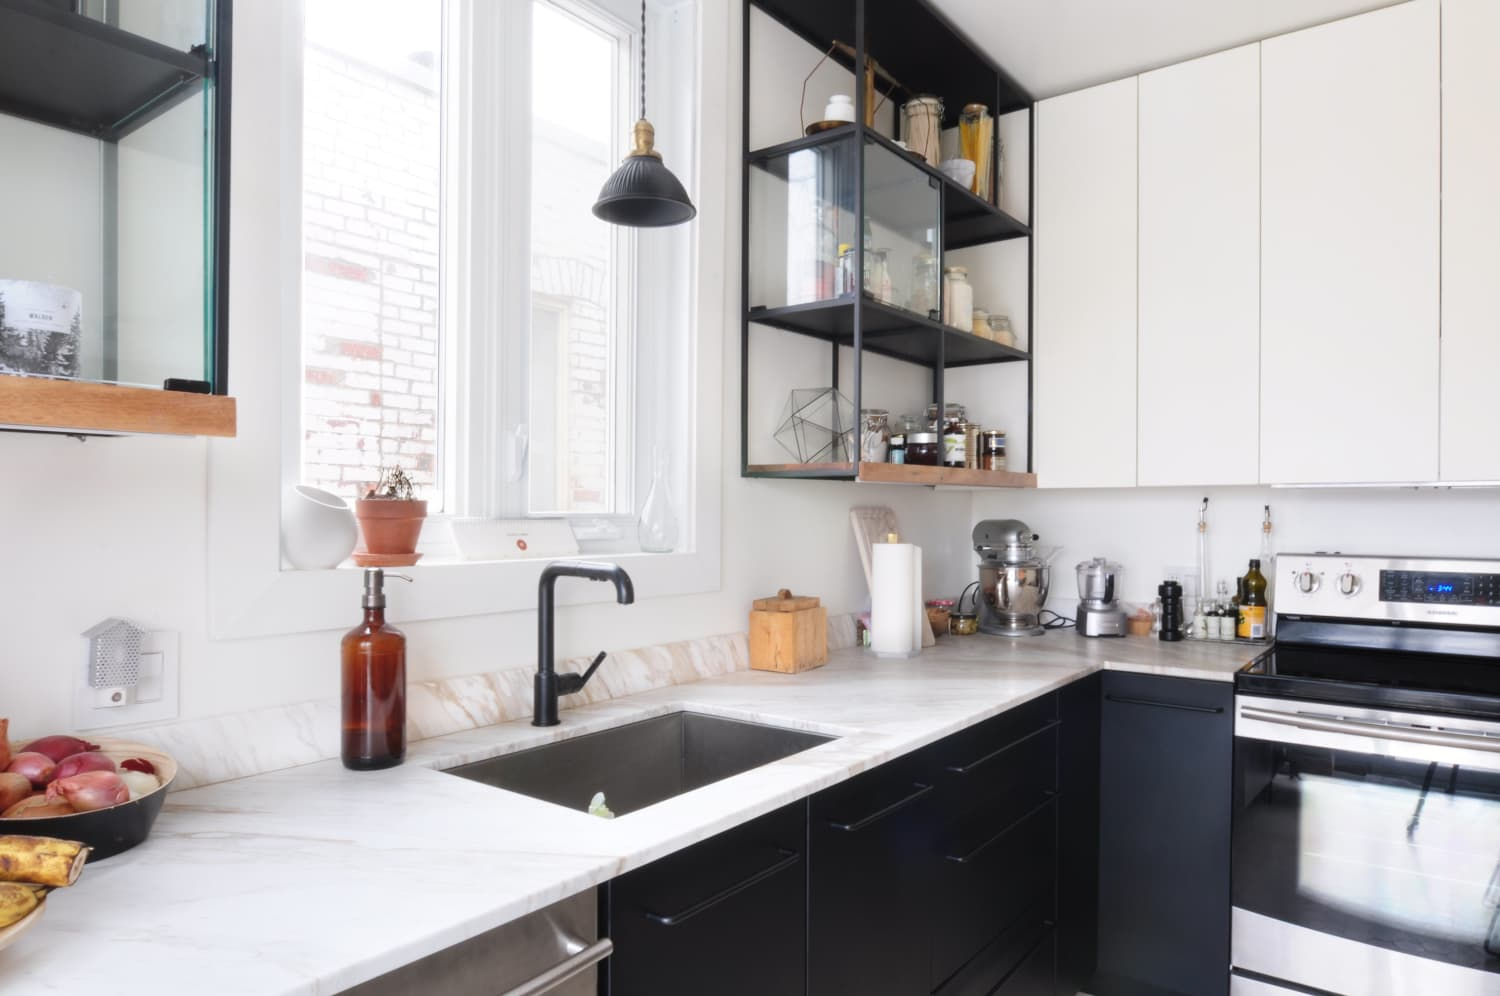 Is Your Kitchen Sink the Key to Happiness? Yes, According to This Fan-Favorite Cleaning Plan